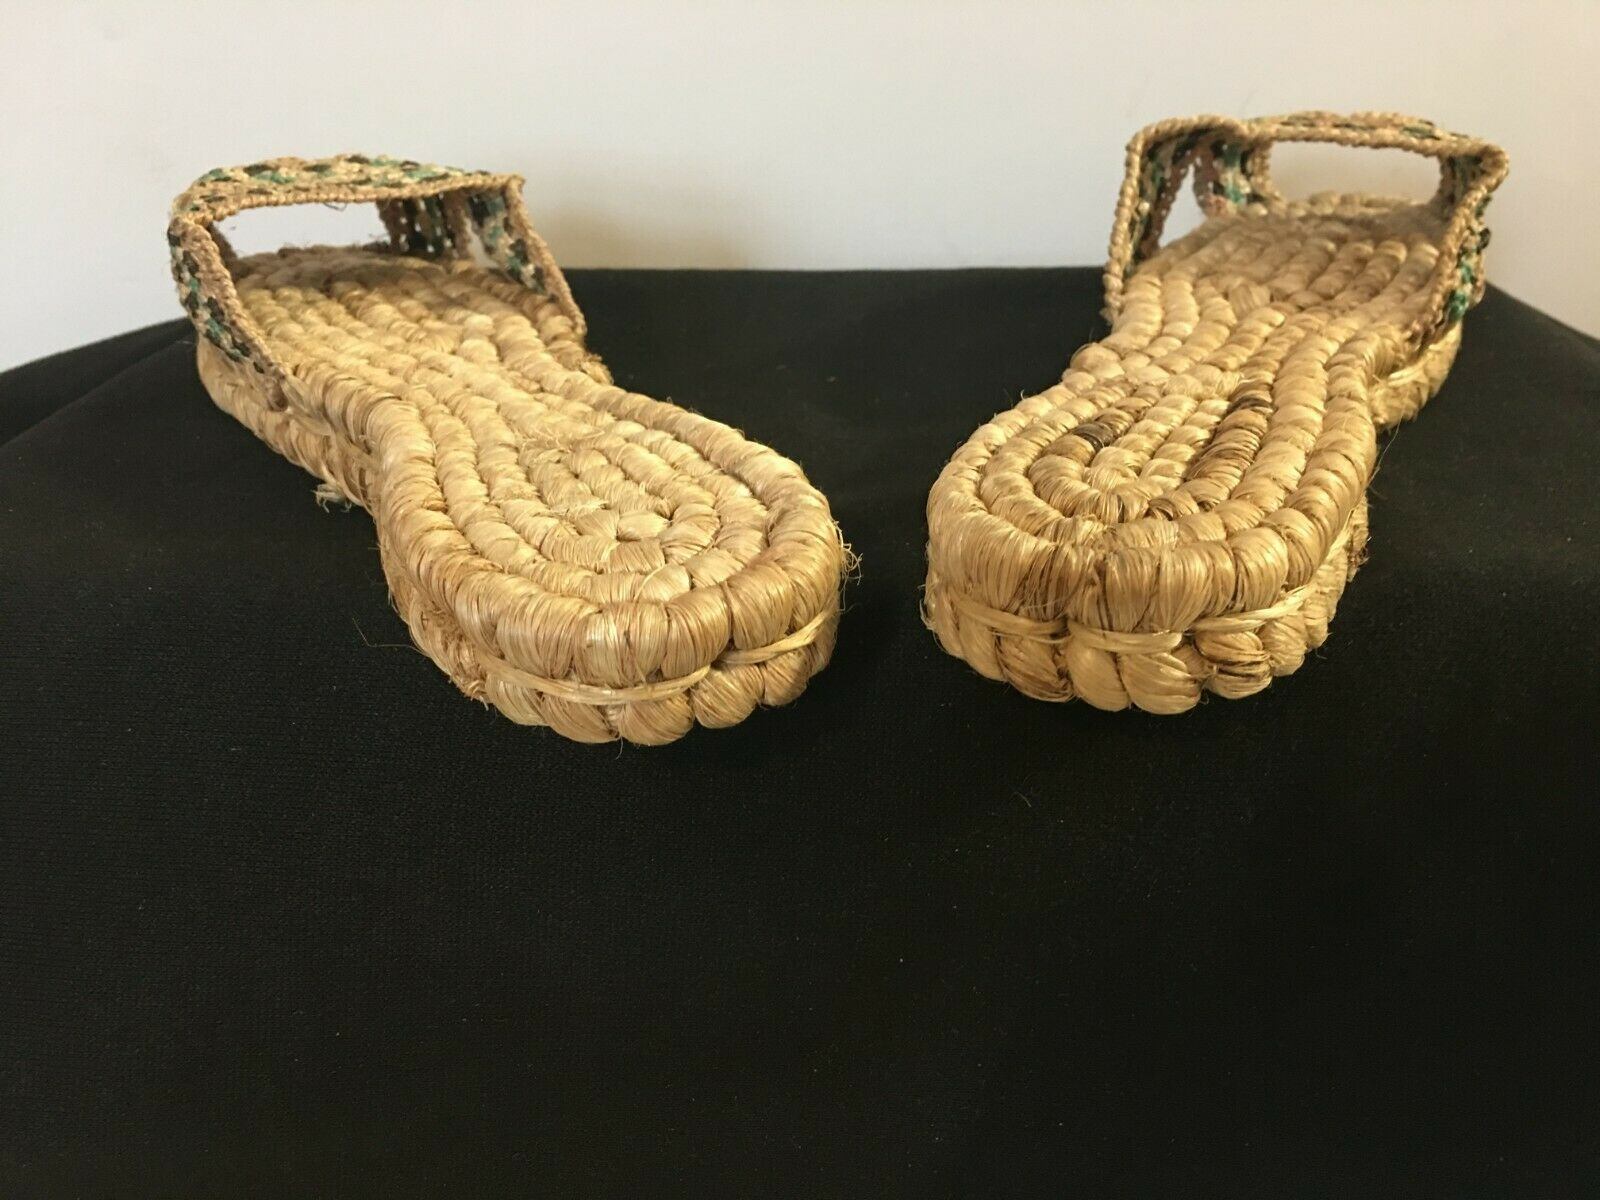 Vintage 1940's Hand Woven Women's Sandals from Ph… - image 4